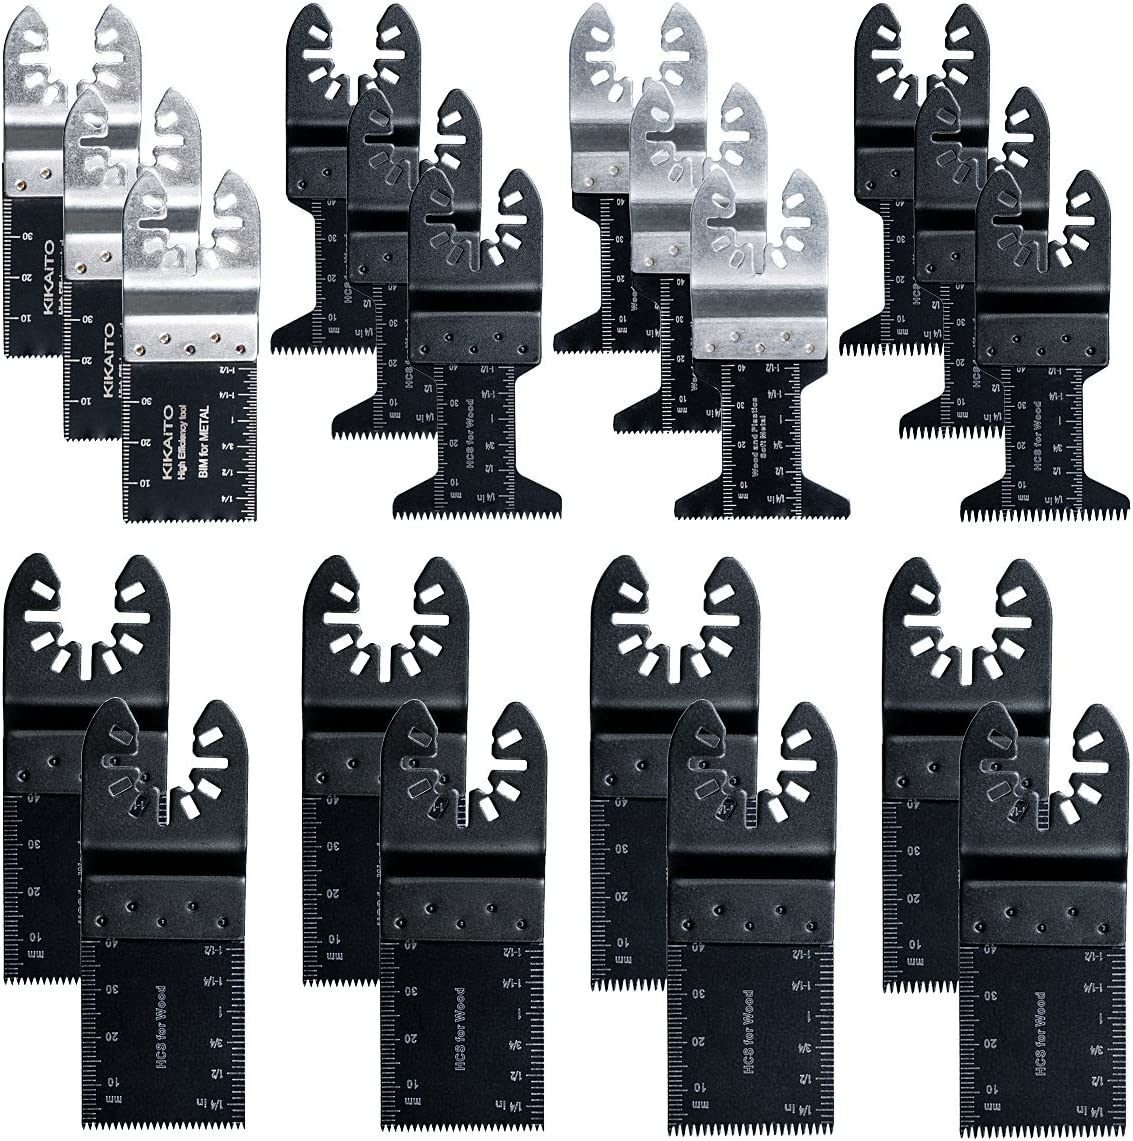 20pc Oscillating National uniform free shipping Saw Blades New product type Metal Re Quick tool Wood